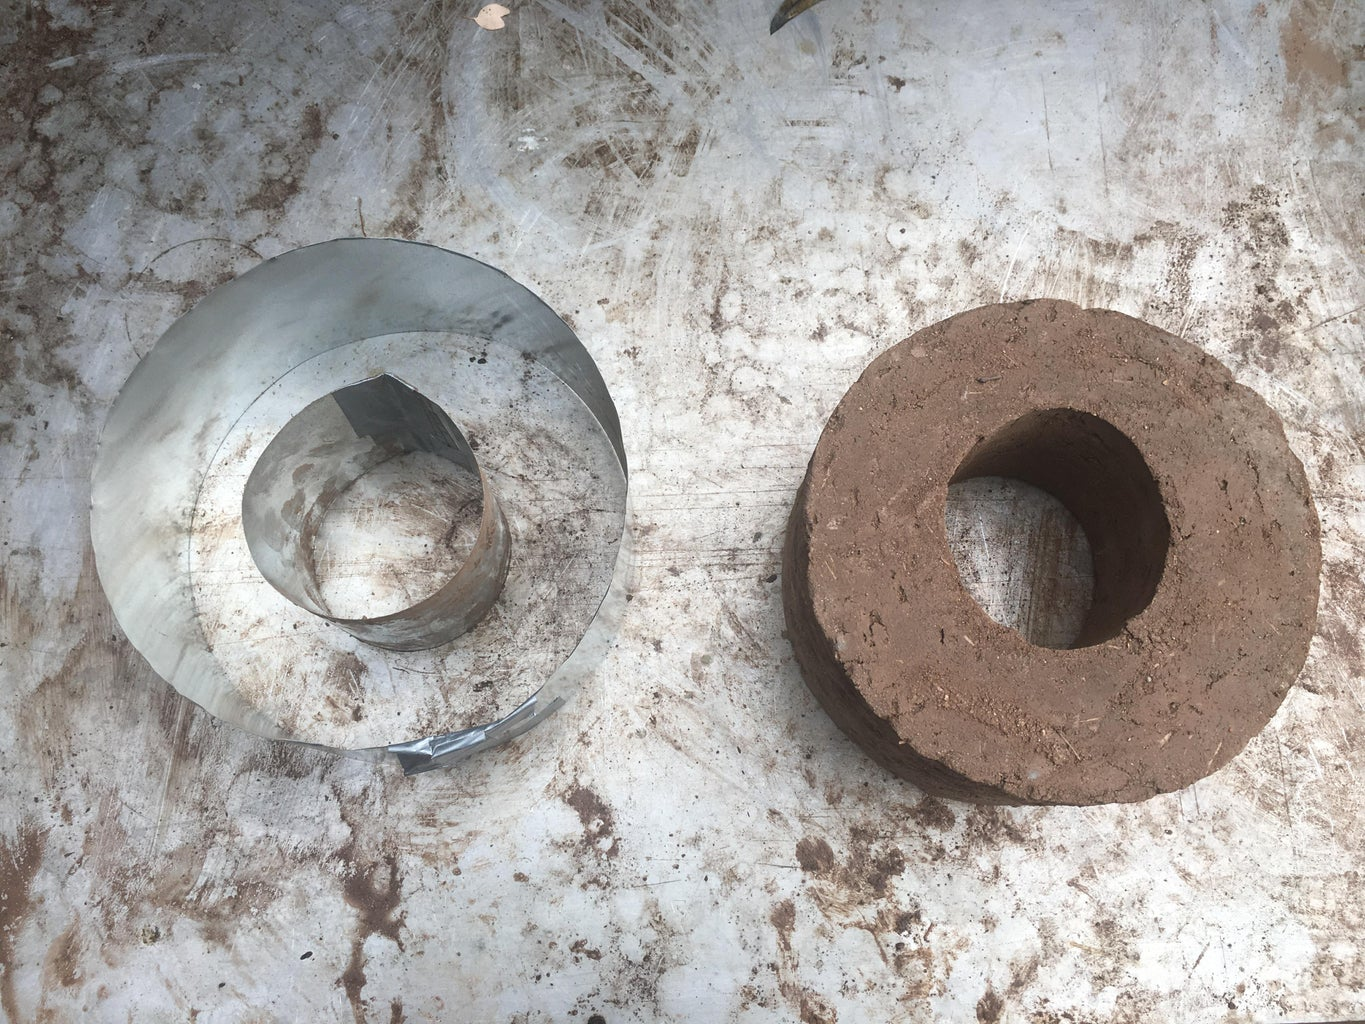 Building the Rocket Stove - Part 1 - Making Donuts